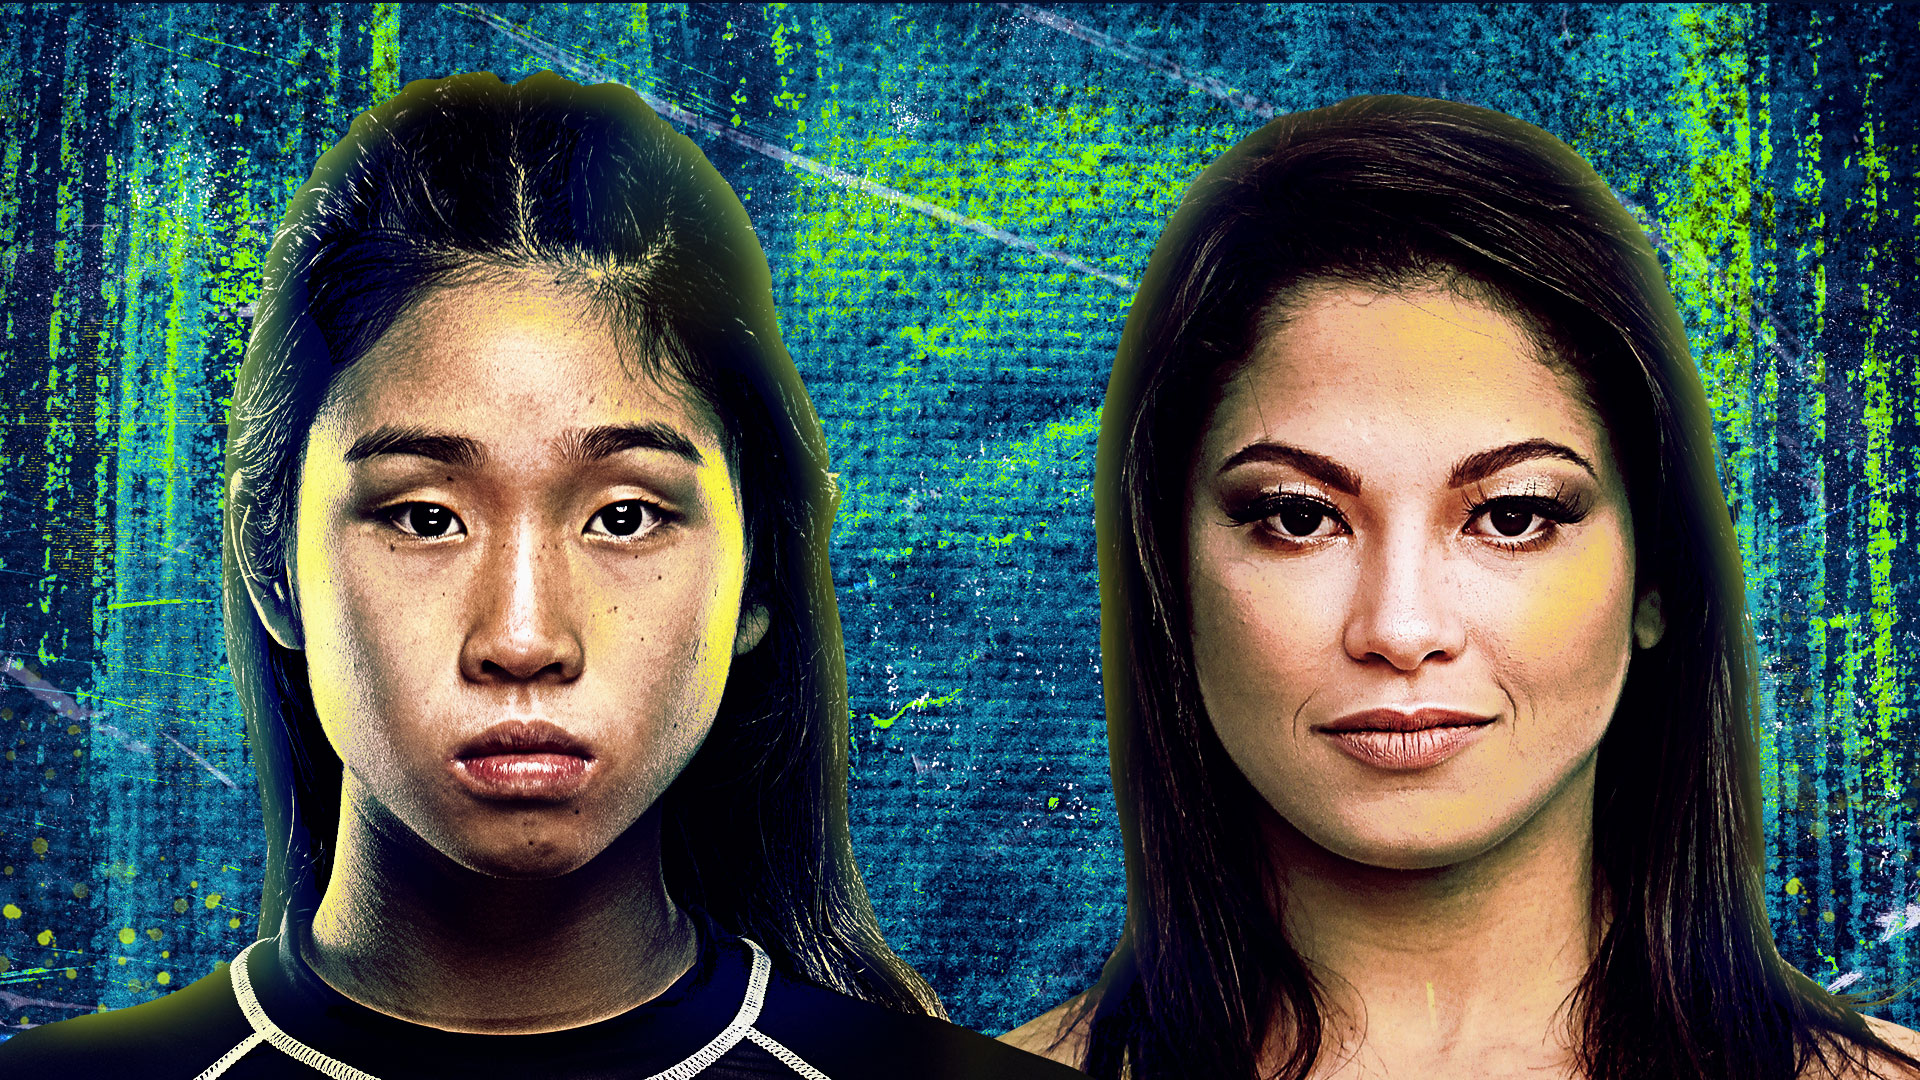 Victoria Lee faces Victoria Souza at ONE: REVOLUTION on 24 September